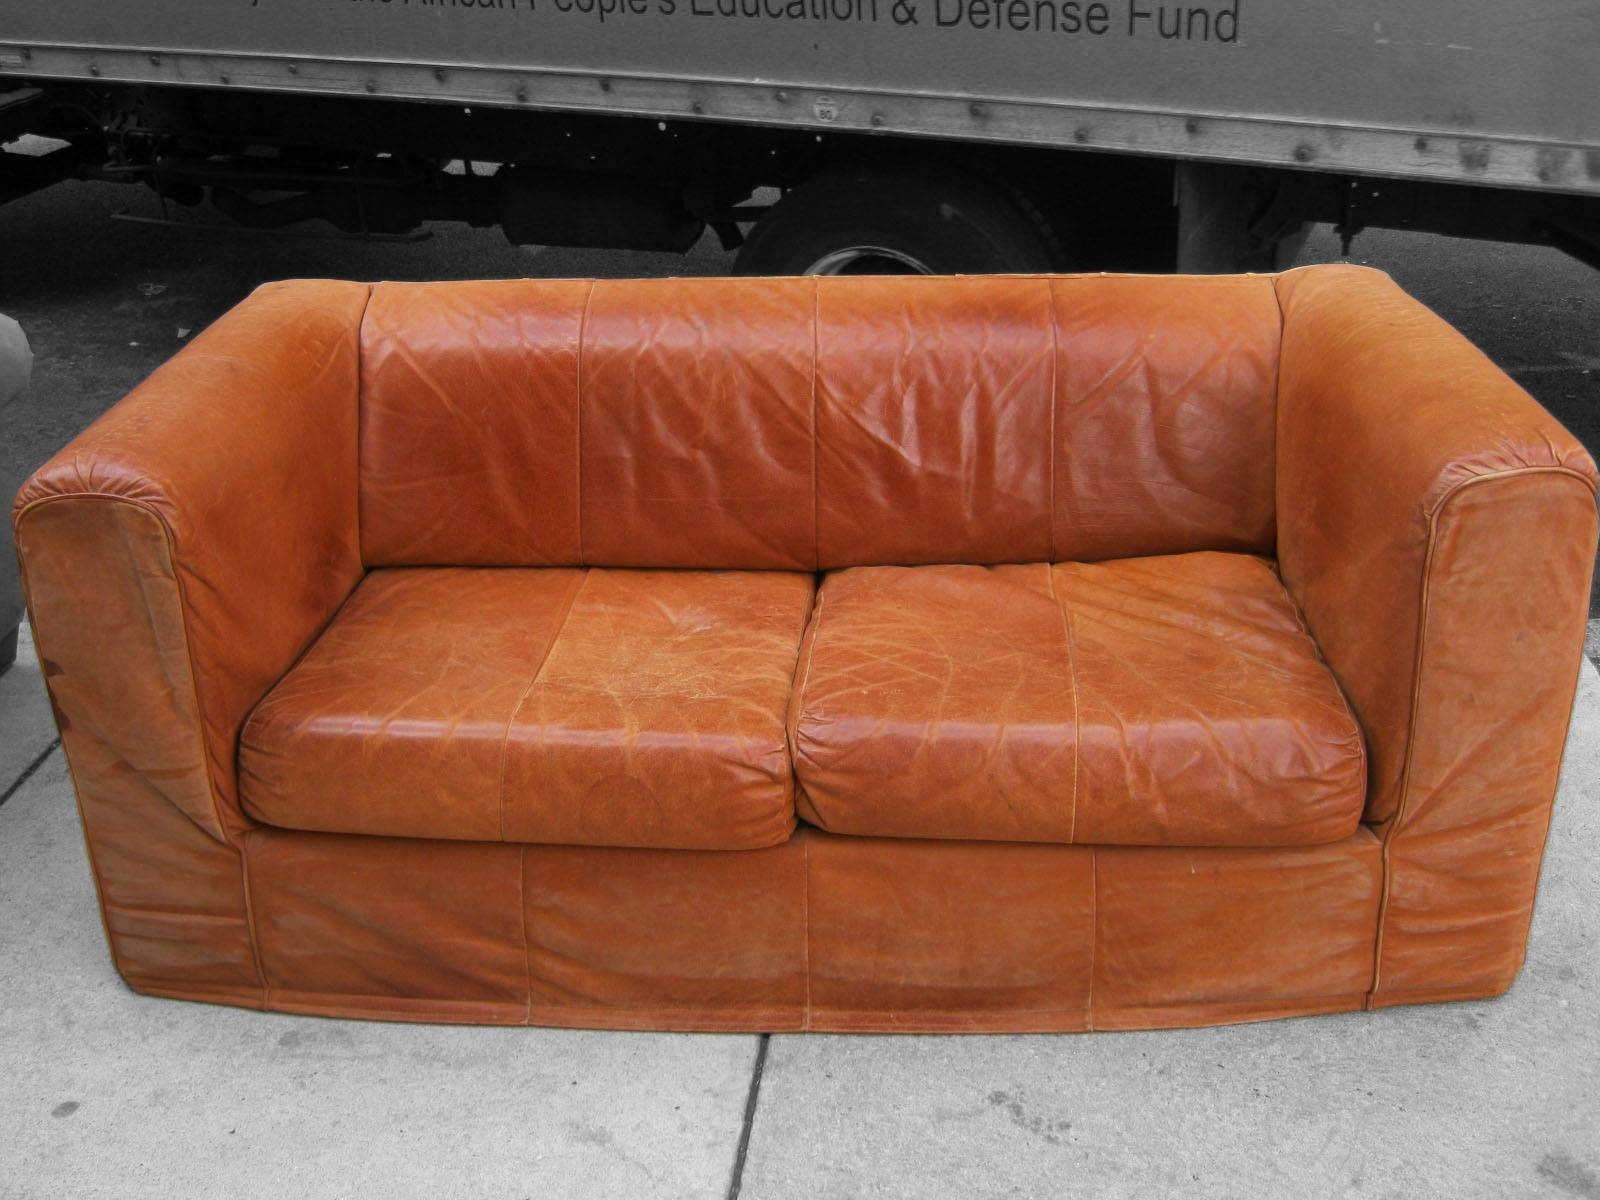 Uhuru Furniture & Collectibles: Camel Colored Leather Sofa - Sold regarding Camel Color Leather Sofas (Image 15 of 15)